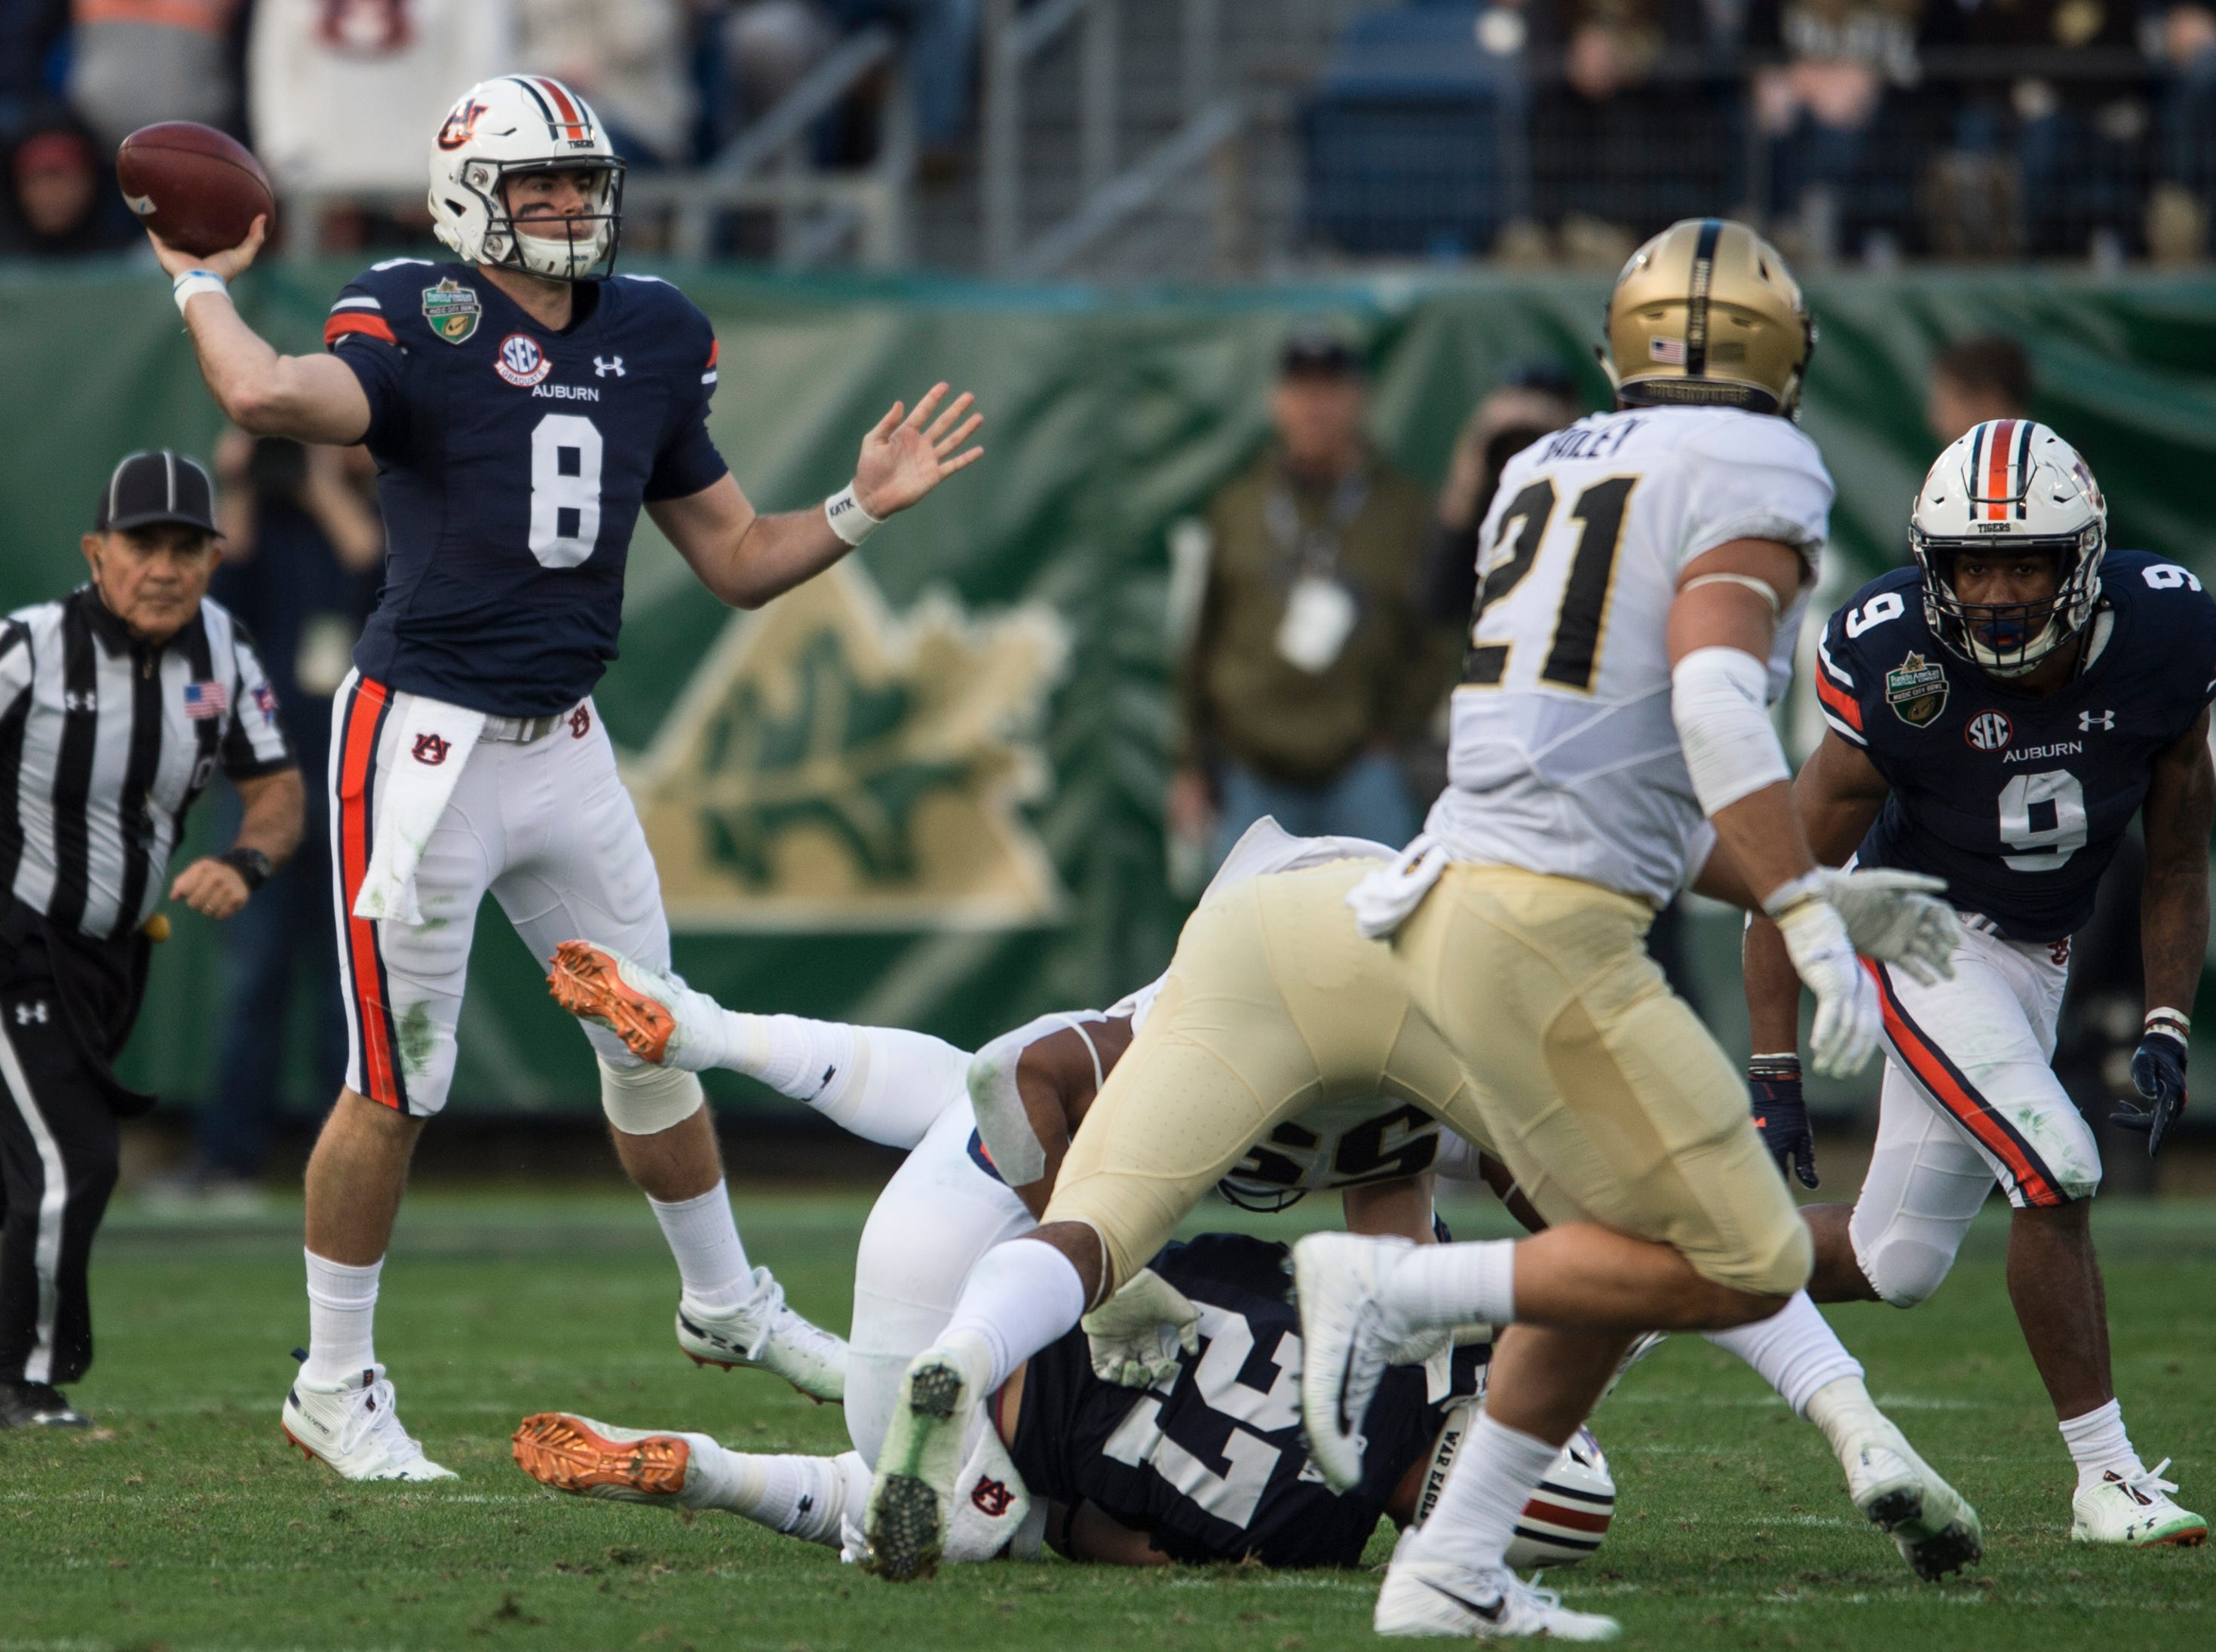 Auburn quarterback Jarrett Stidham (8) throws the ball down the field during the Music City Bowl at Nissan Stadium in Nashville, Tenn., on Friday, Dec. 28, 2018. Auburn leads Purdue 56-7 at halftime.